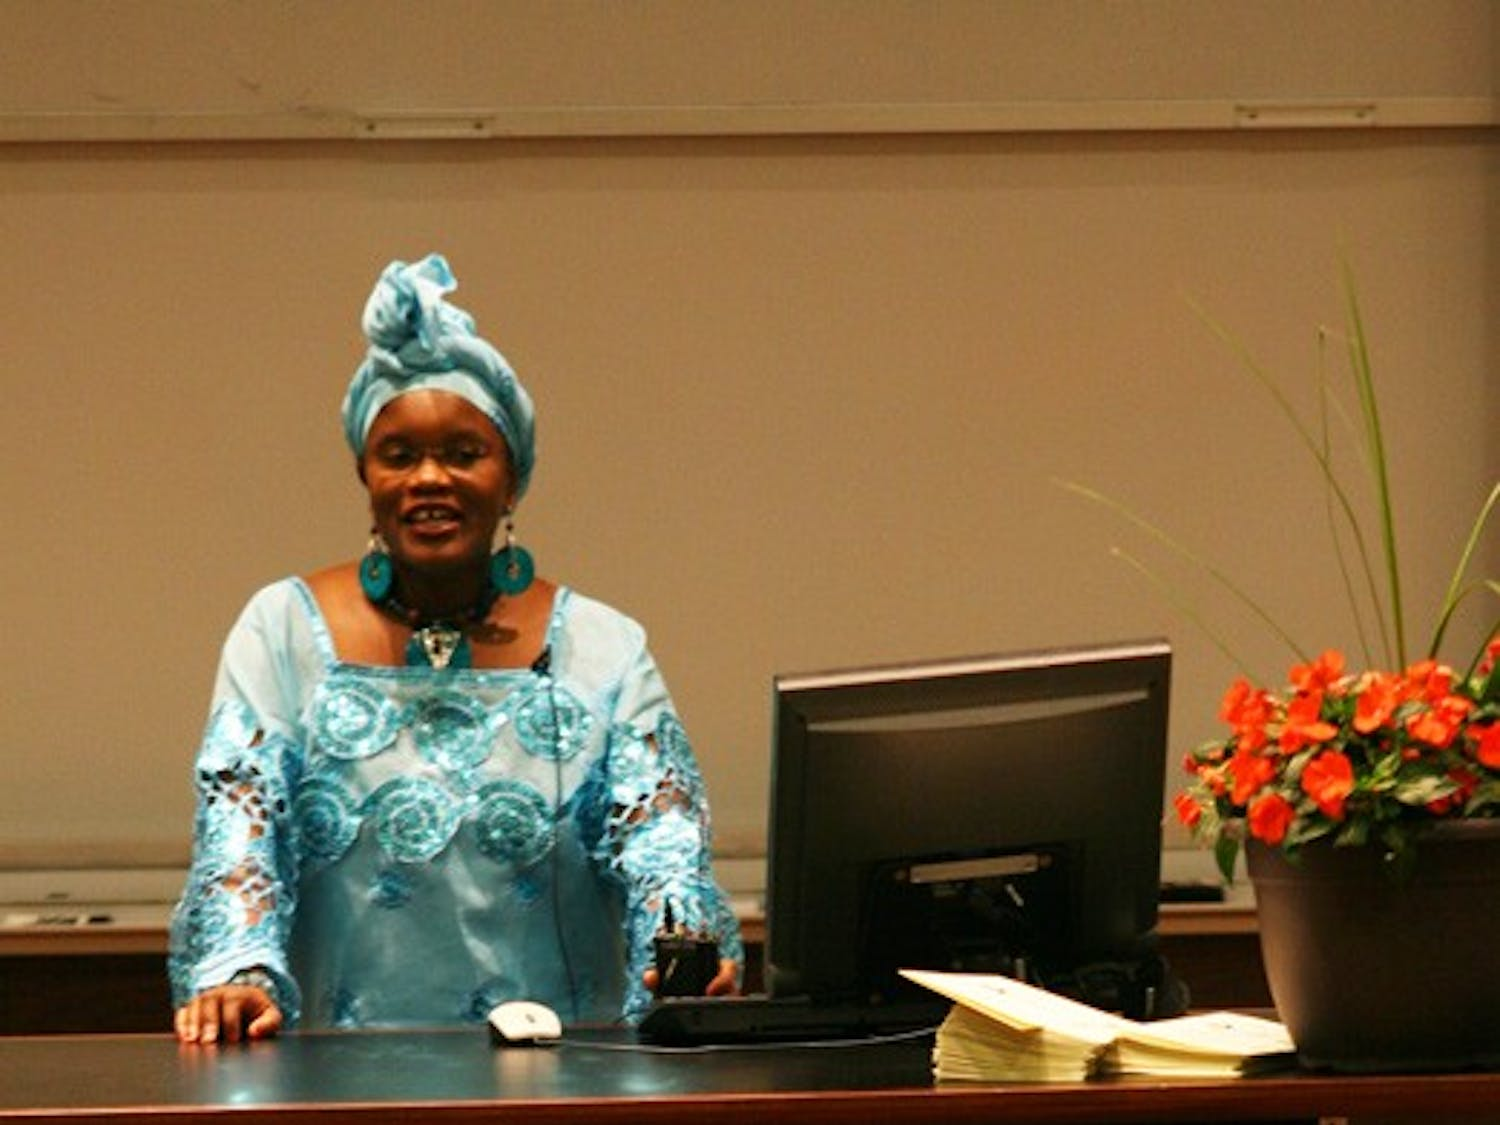 """Waithera Karim-Sesay delivers a talk in the style of a """"last lecture"""" on Sunday. DTH/ Daniel Sircar"""